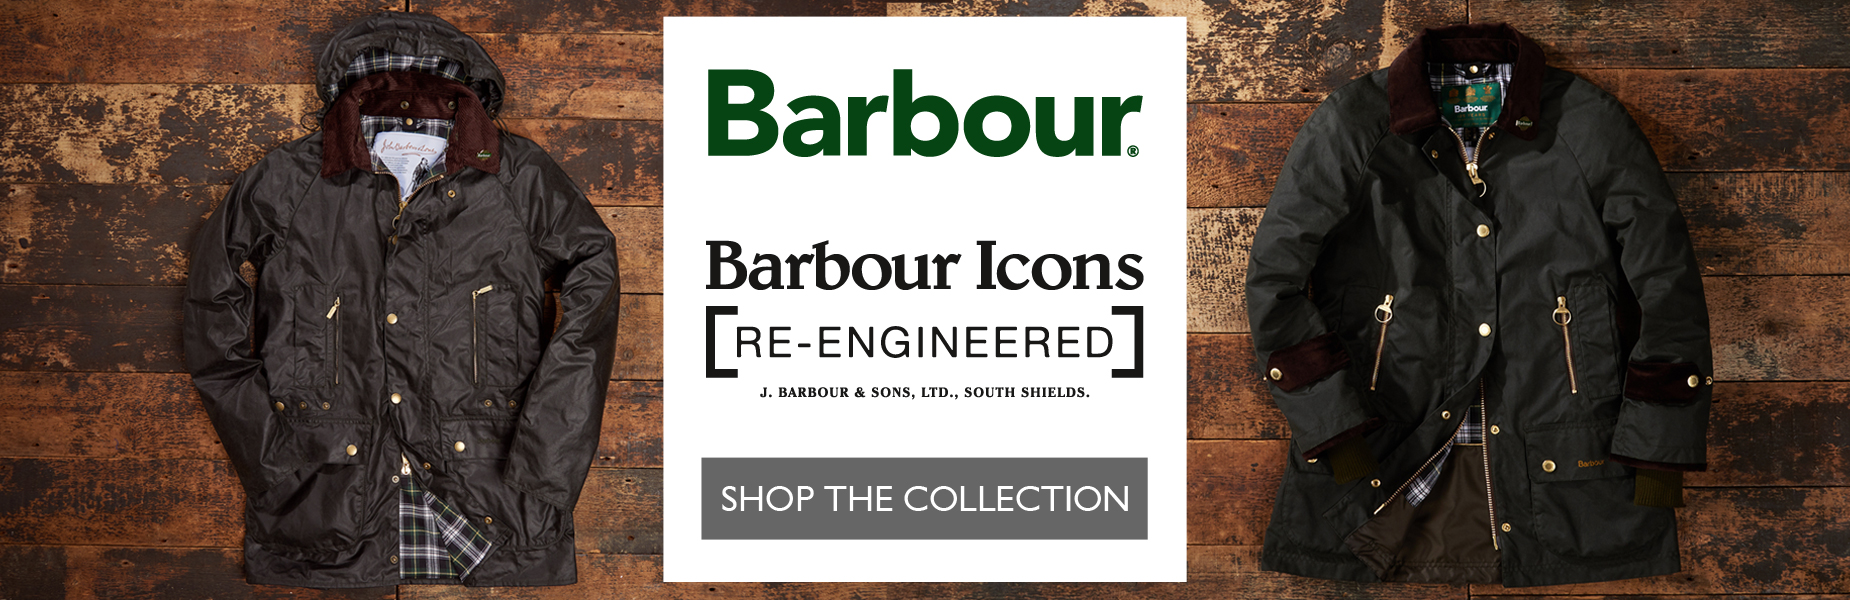 4e72cdd9132 Barbour Jackets | Musto | Schoffel | Country Clothing | Philip Morris